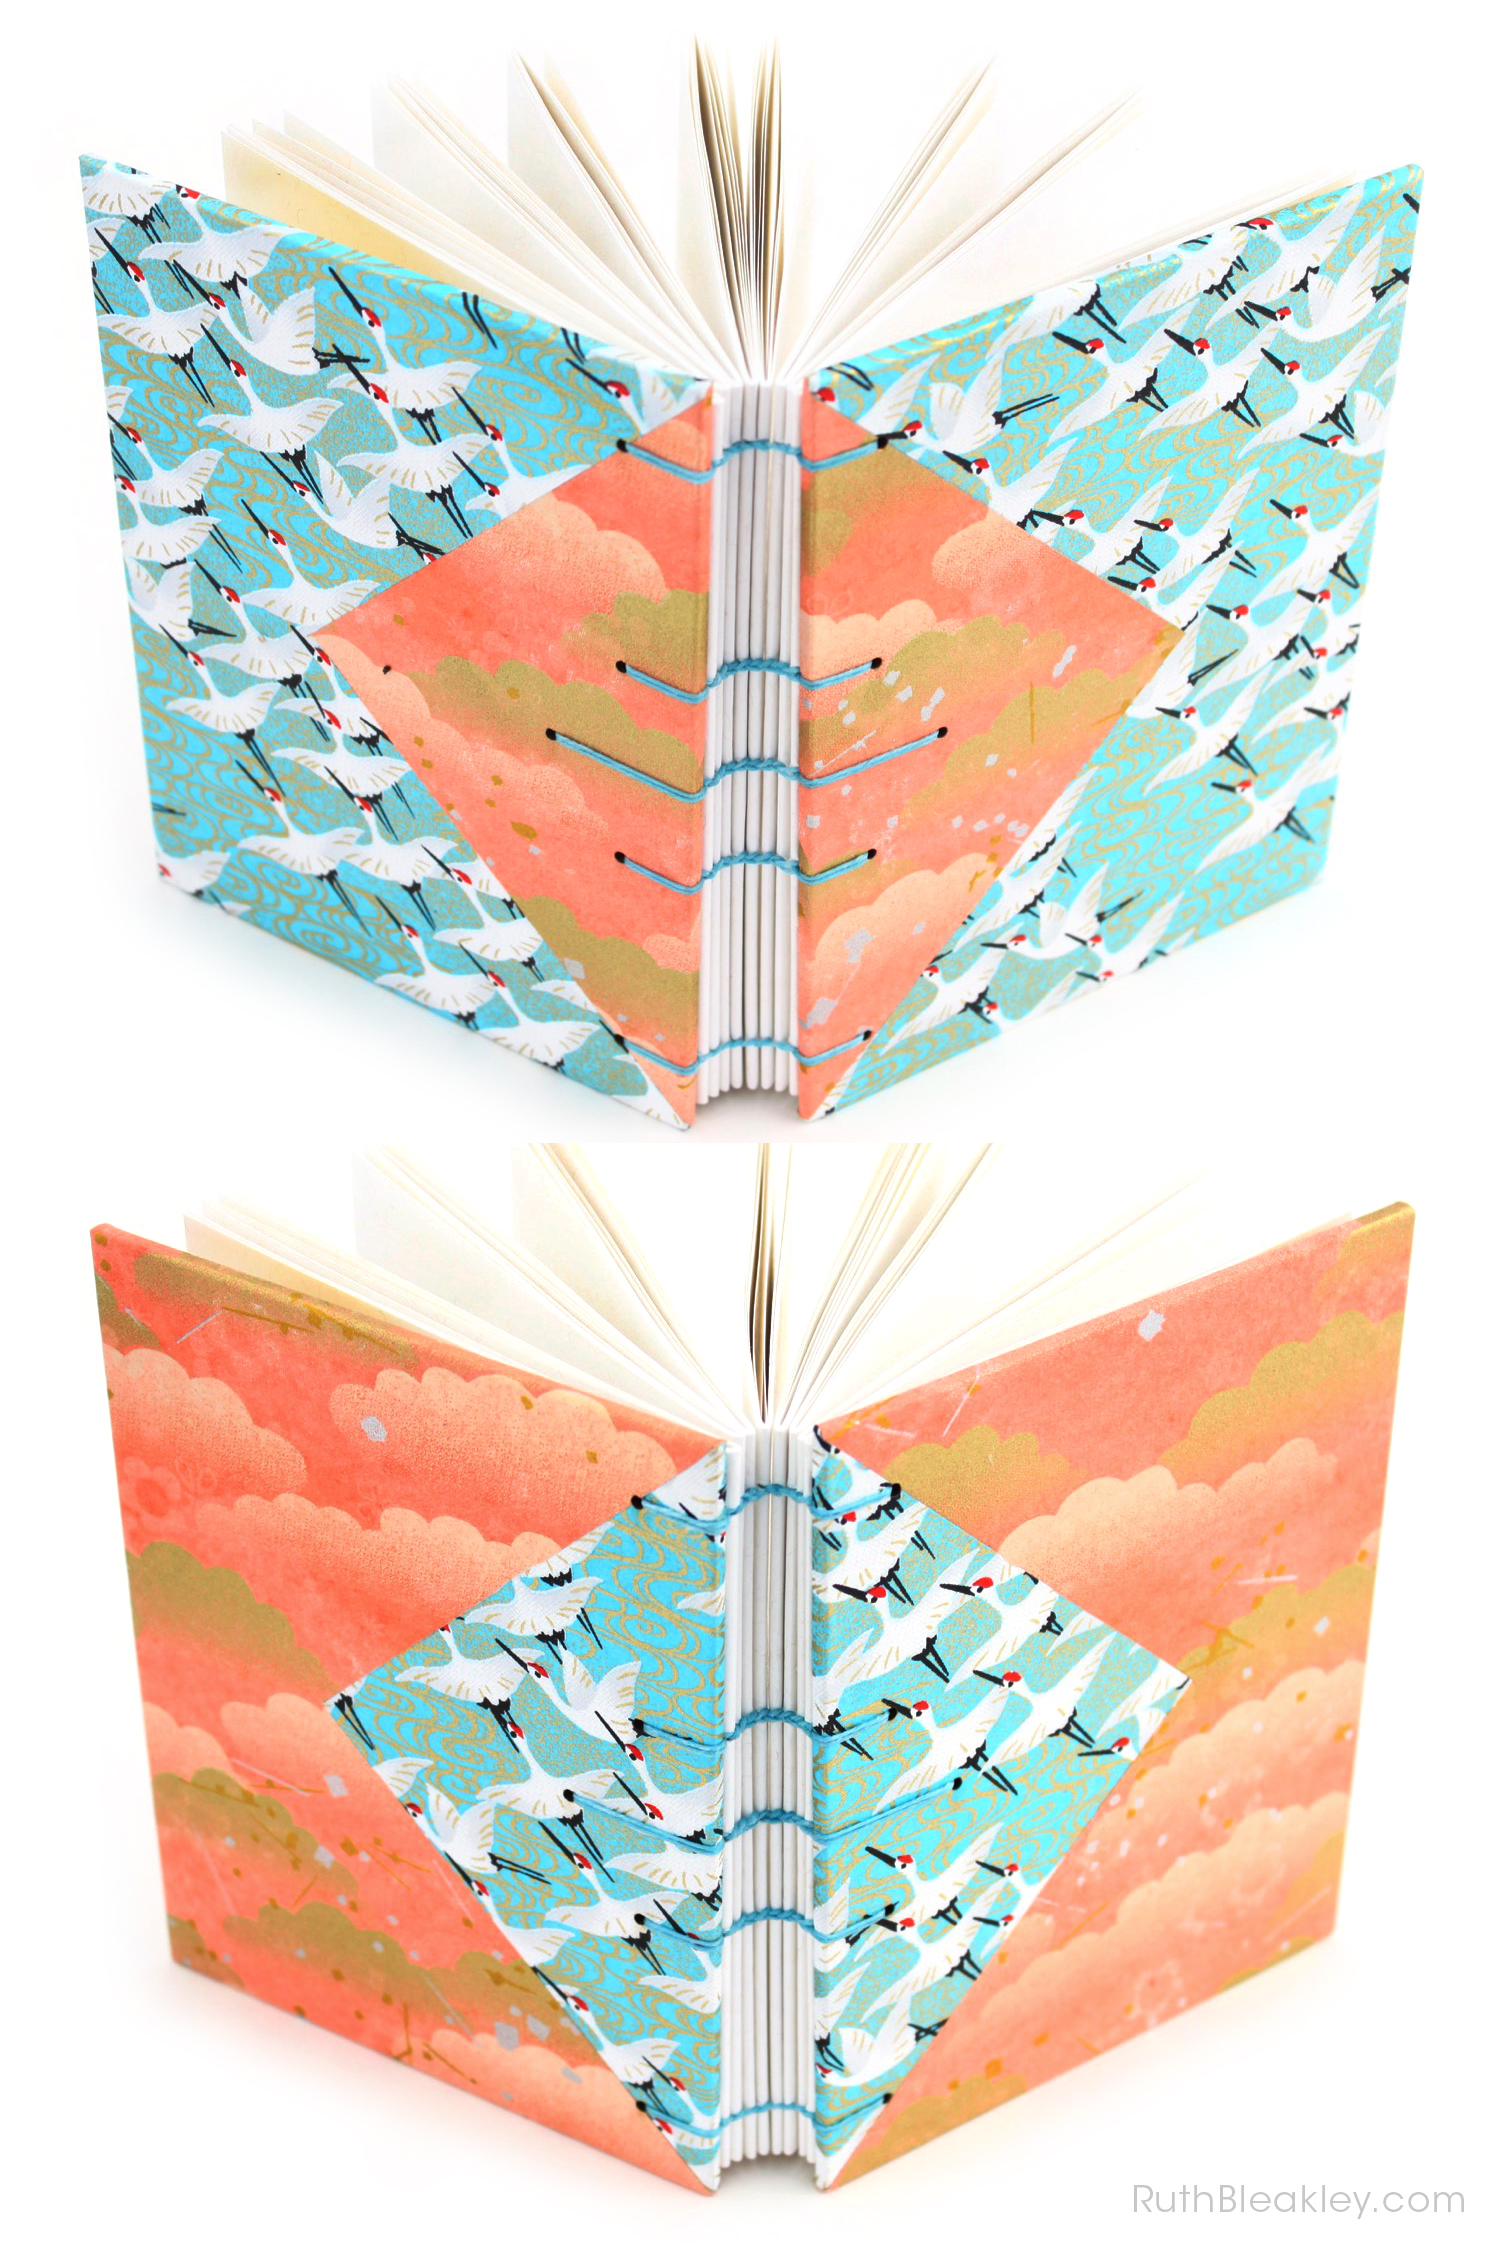 Blue Cranes and Peach Cloud Twin Journals by Ruth Bleakley that lay flat when open - 10